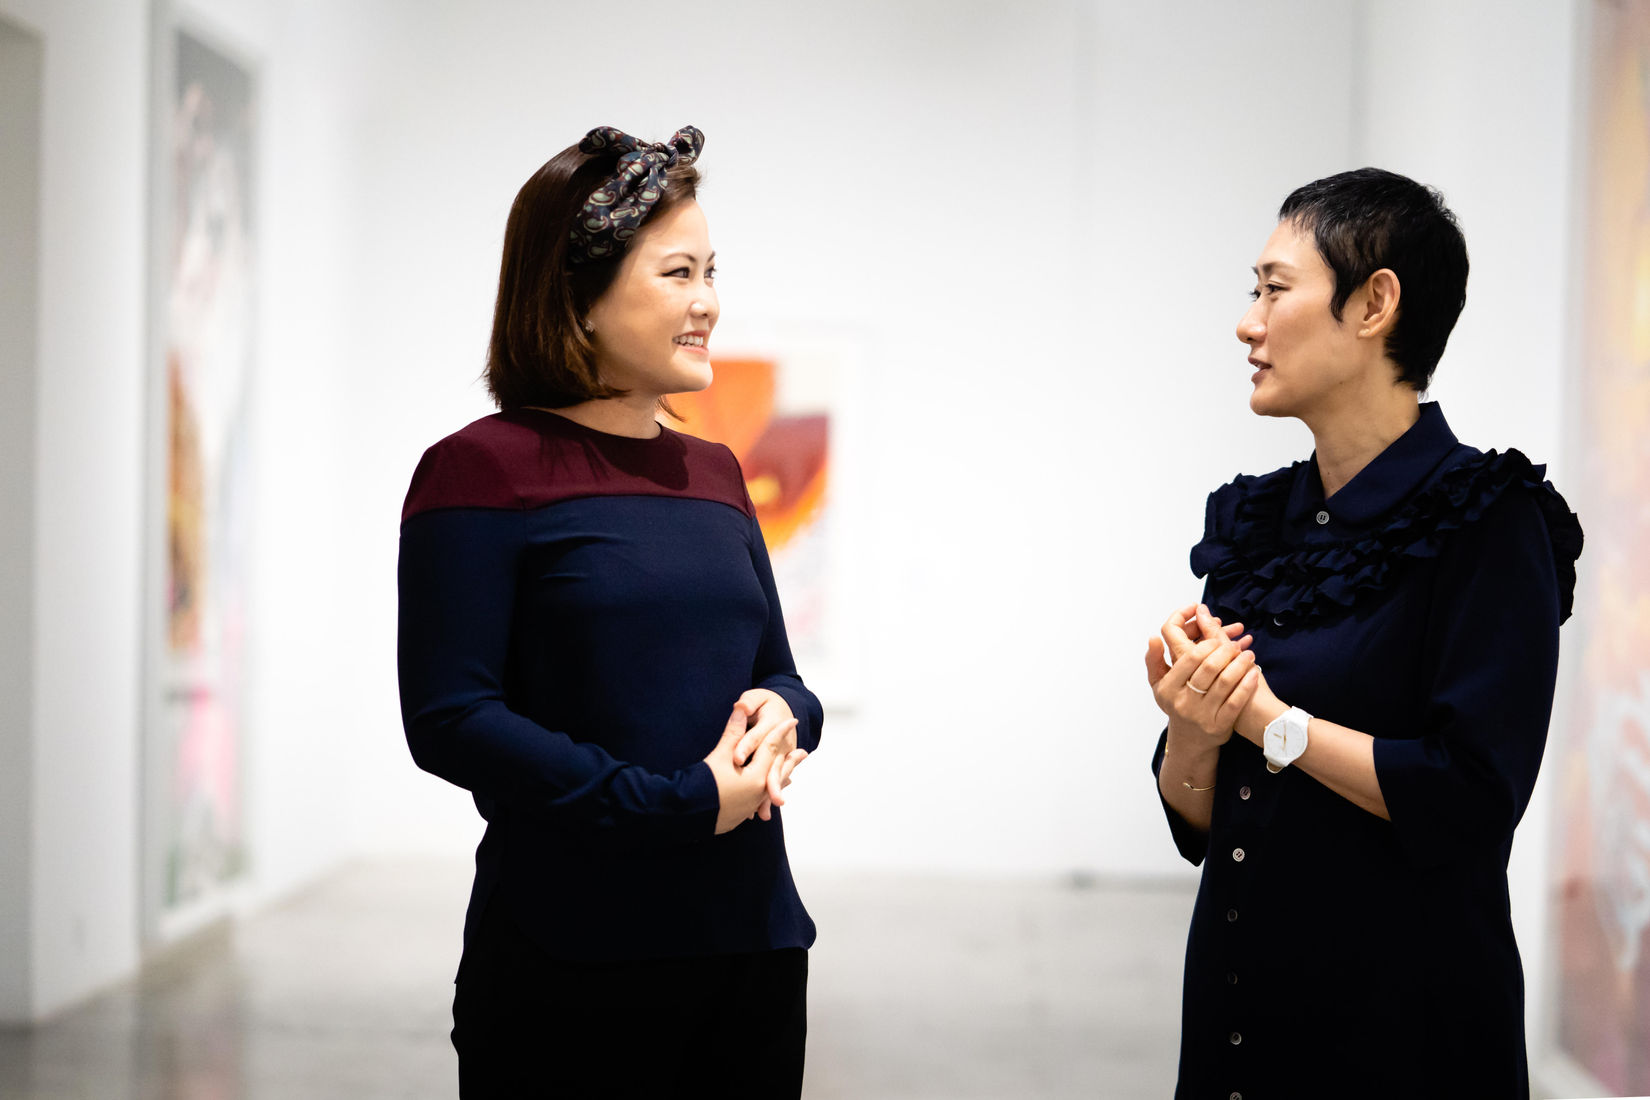 An Interview with Emi Eu and Audrey Yeo of S.E.A. Focus